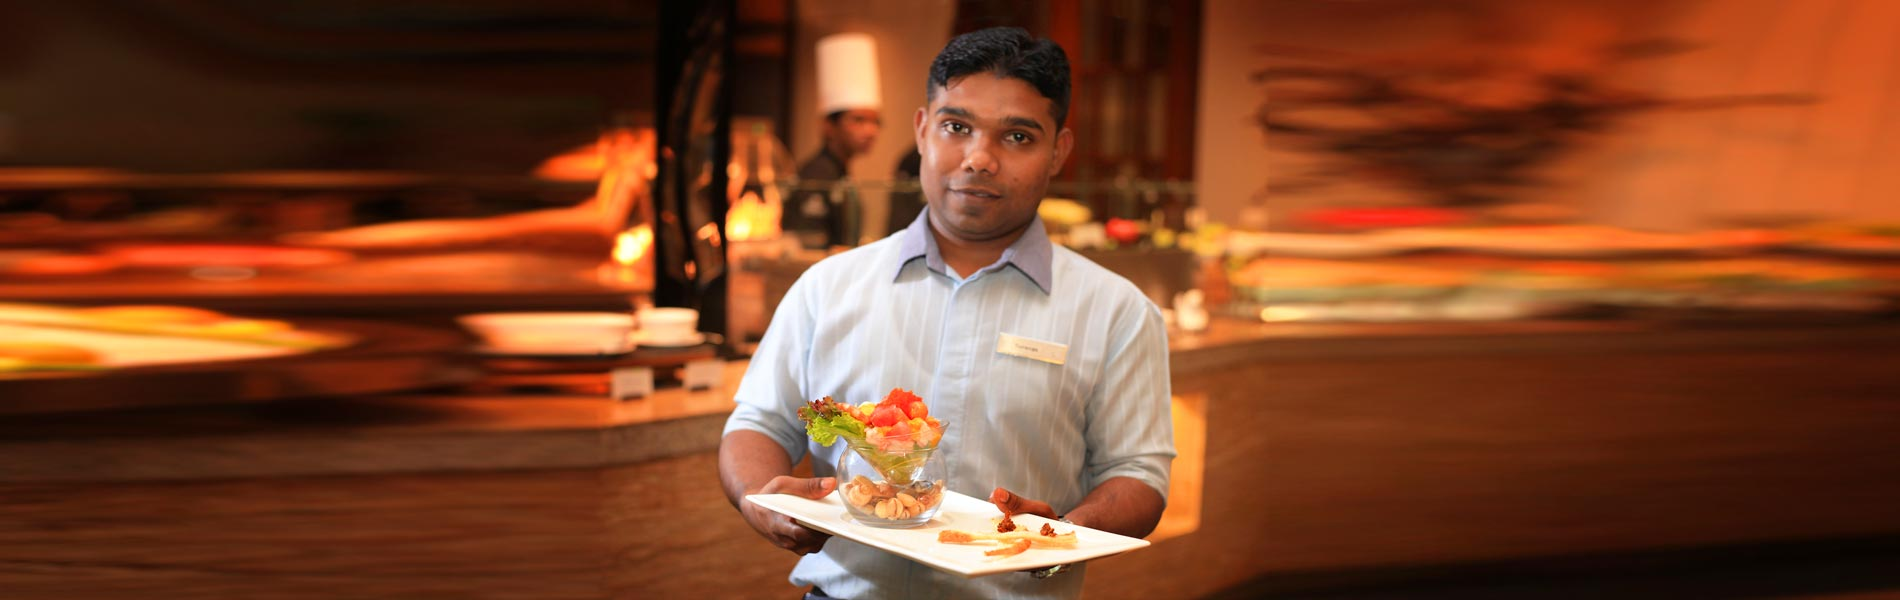 Friendly and professional team to guide you through the A La Carte or Buffet options